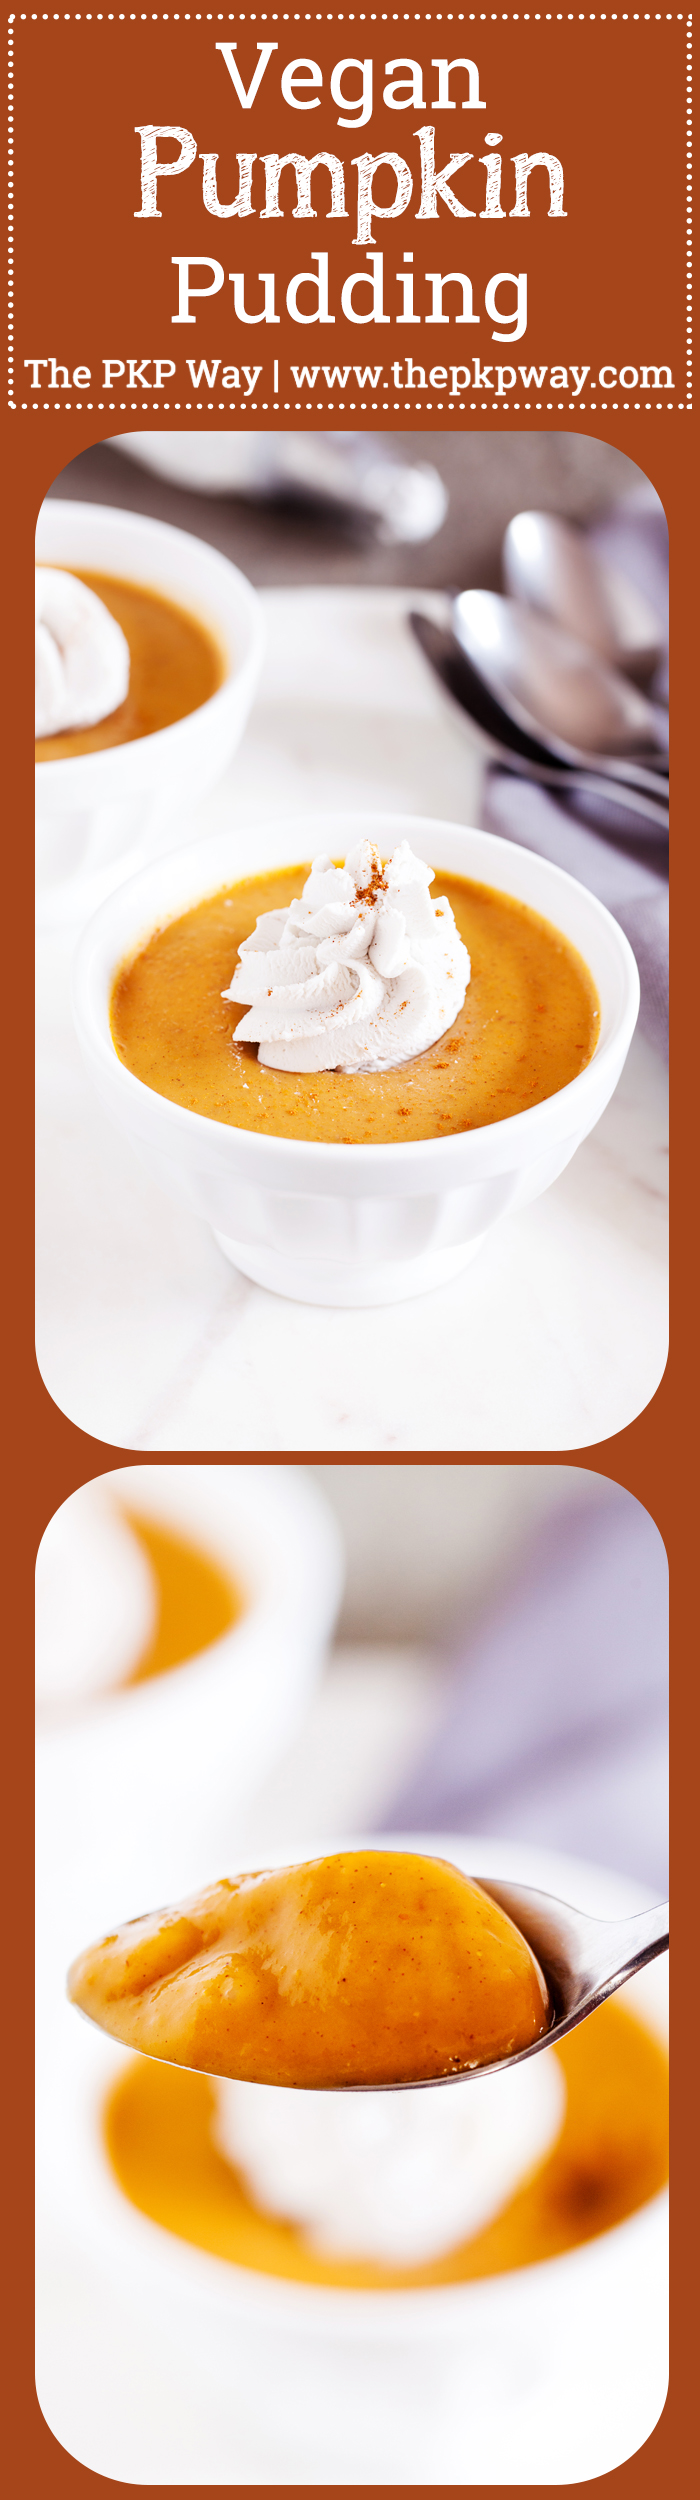 Creamy and dairy-free, this Vegan Pumpkin Pudding gives you a mouthful of pumpkin and warm fall flavors in every bite!